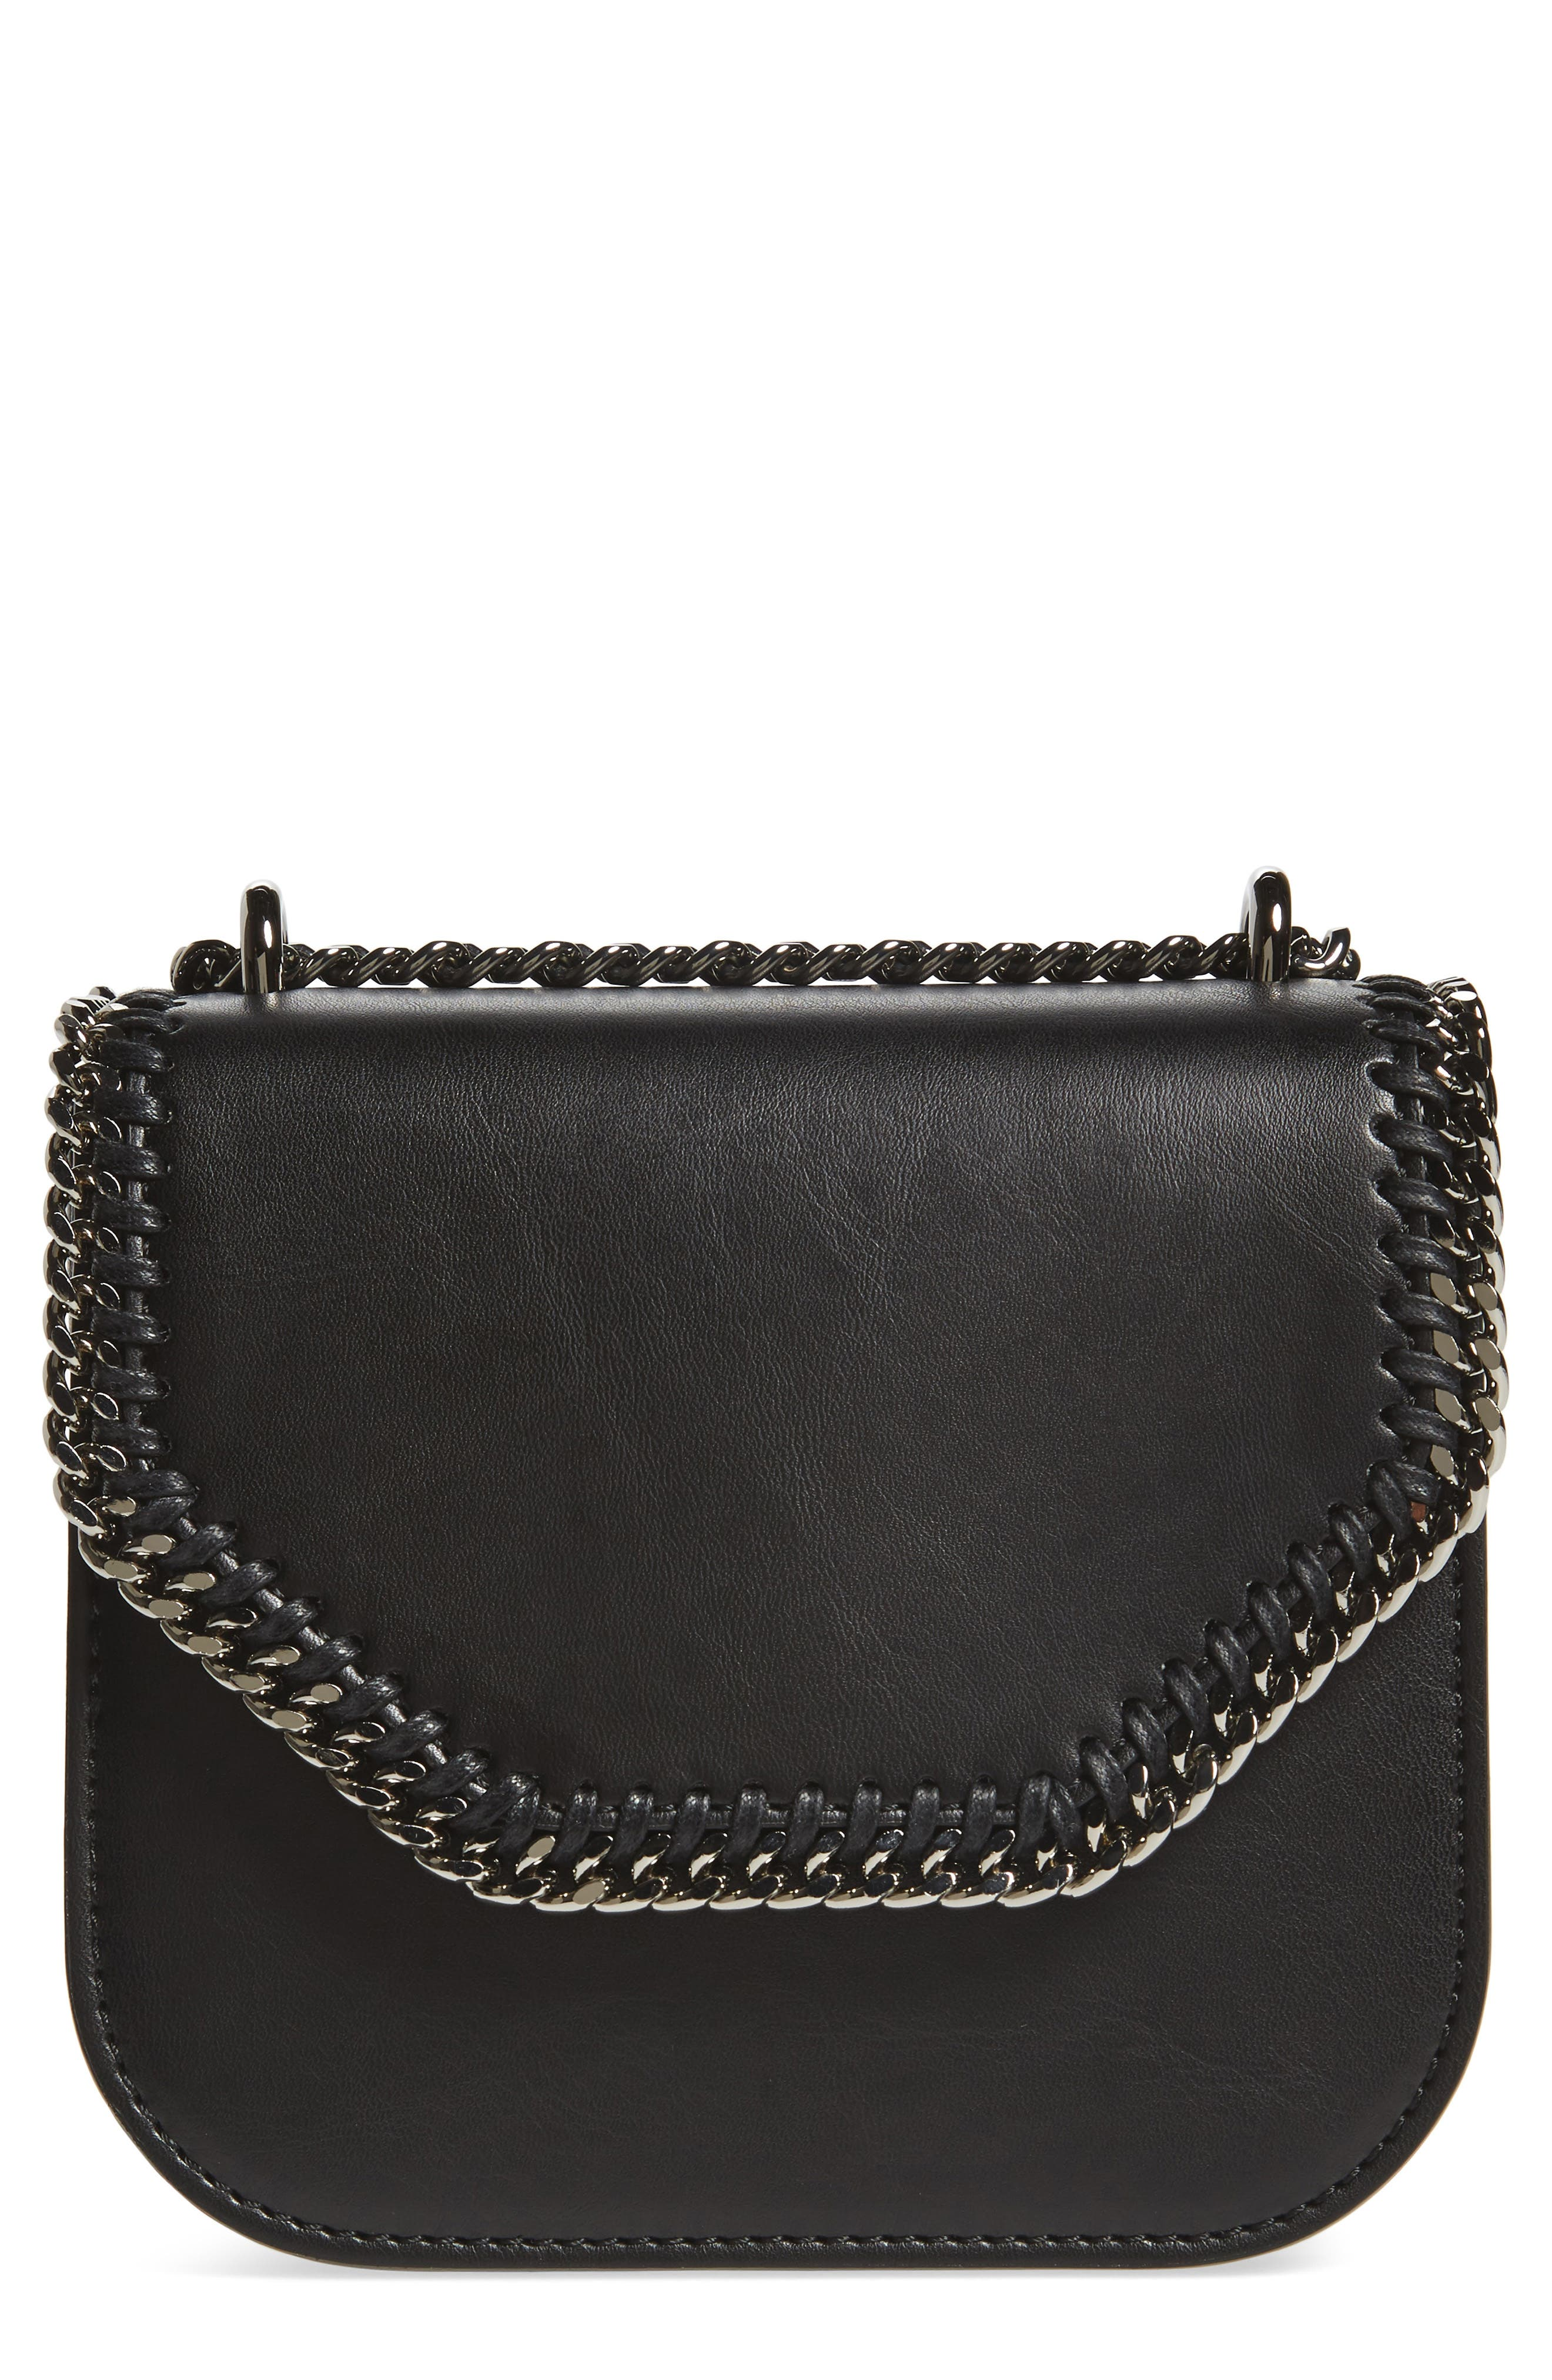 Alternate Image 1 Selected - Stella McCartney Small Falabella Box Alter Nappa Faux Leather Crossbody Bag